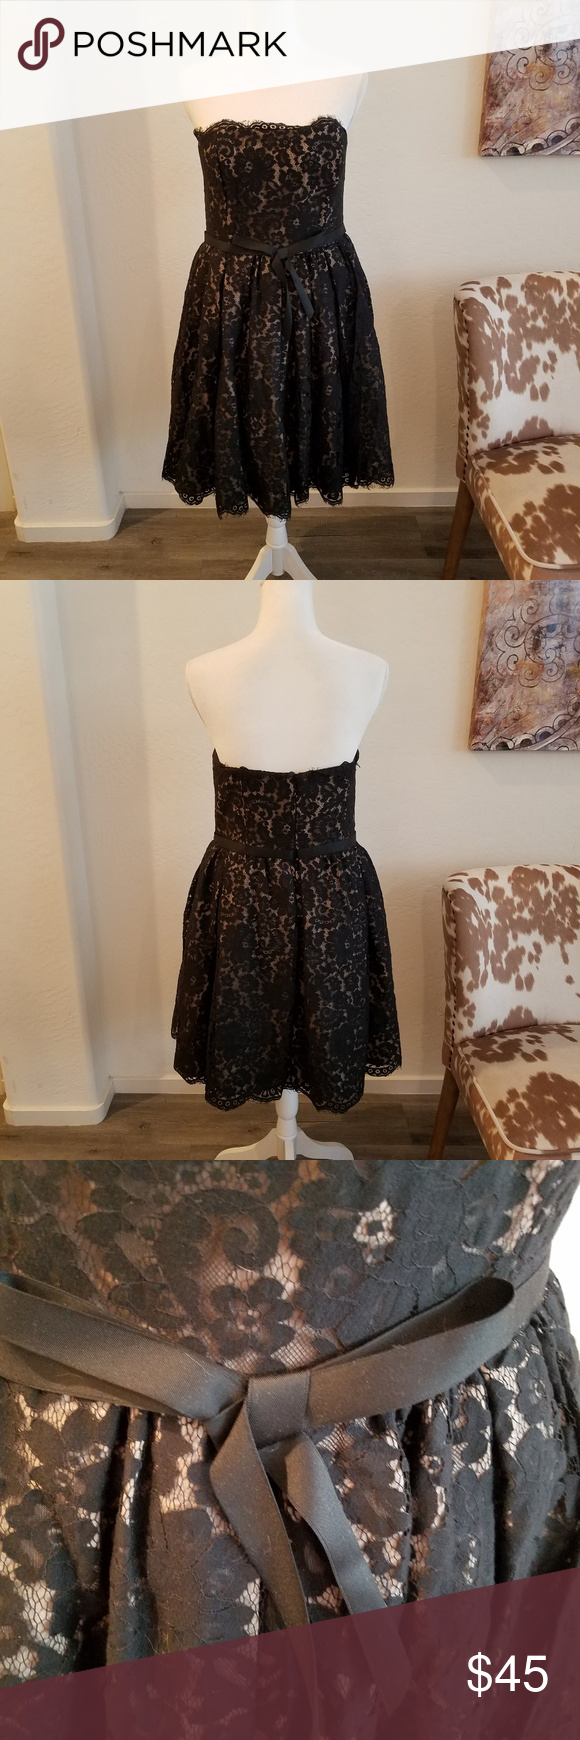 Roberto Rodriguez Target Dress Sz 4 Beautiful Cocktail Dress New With Tag Bust Across 19 In Waist Across 16 I Dresses Beautiful Cocktail Dresses Target Dresses [ 1740 x 580 Pixel ]